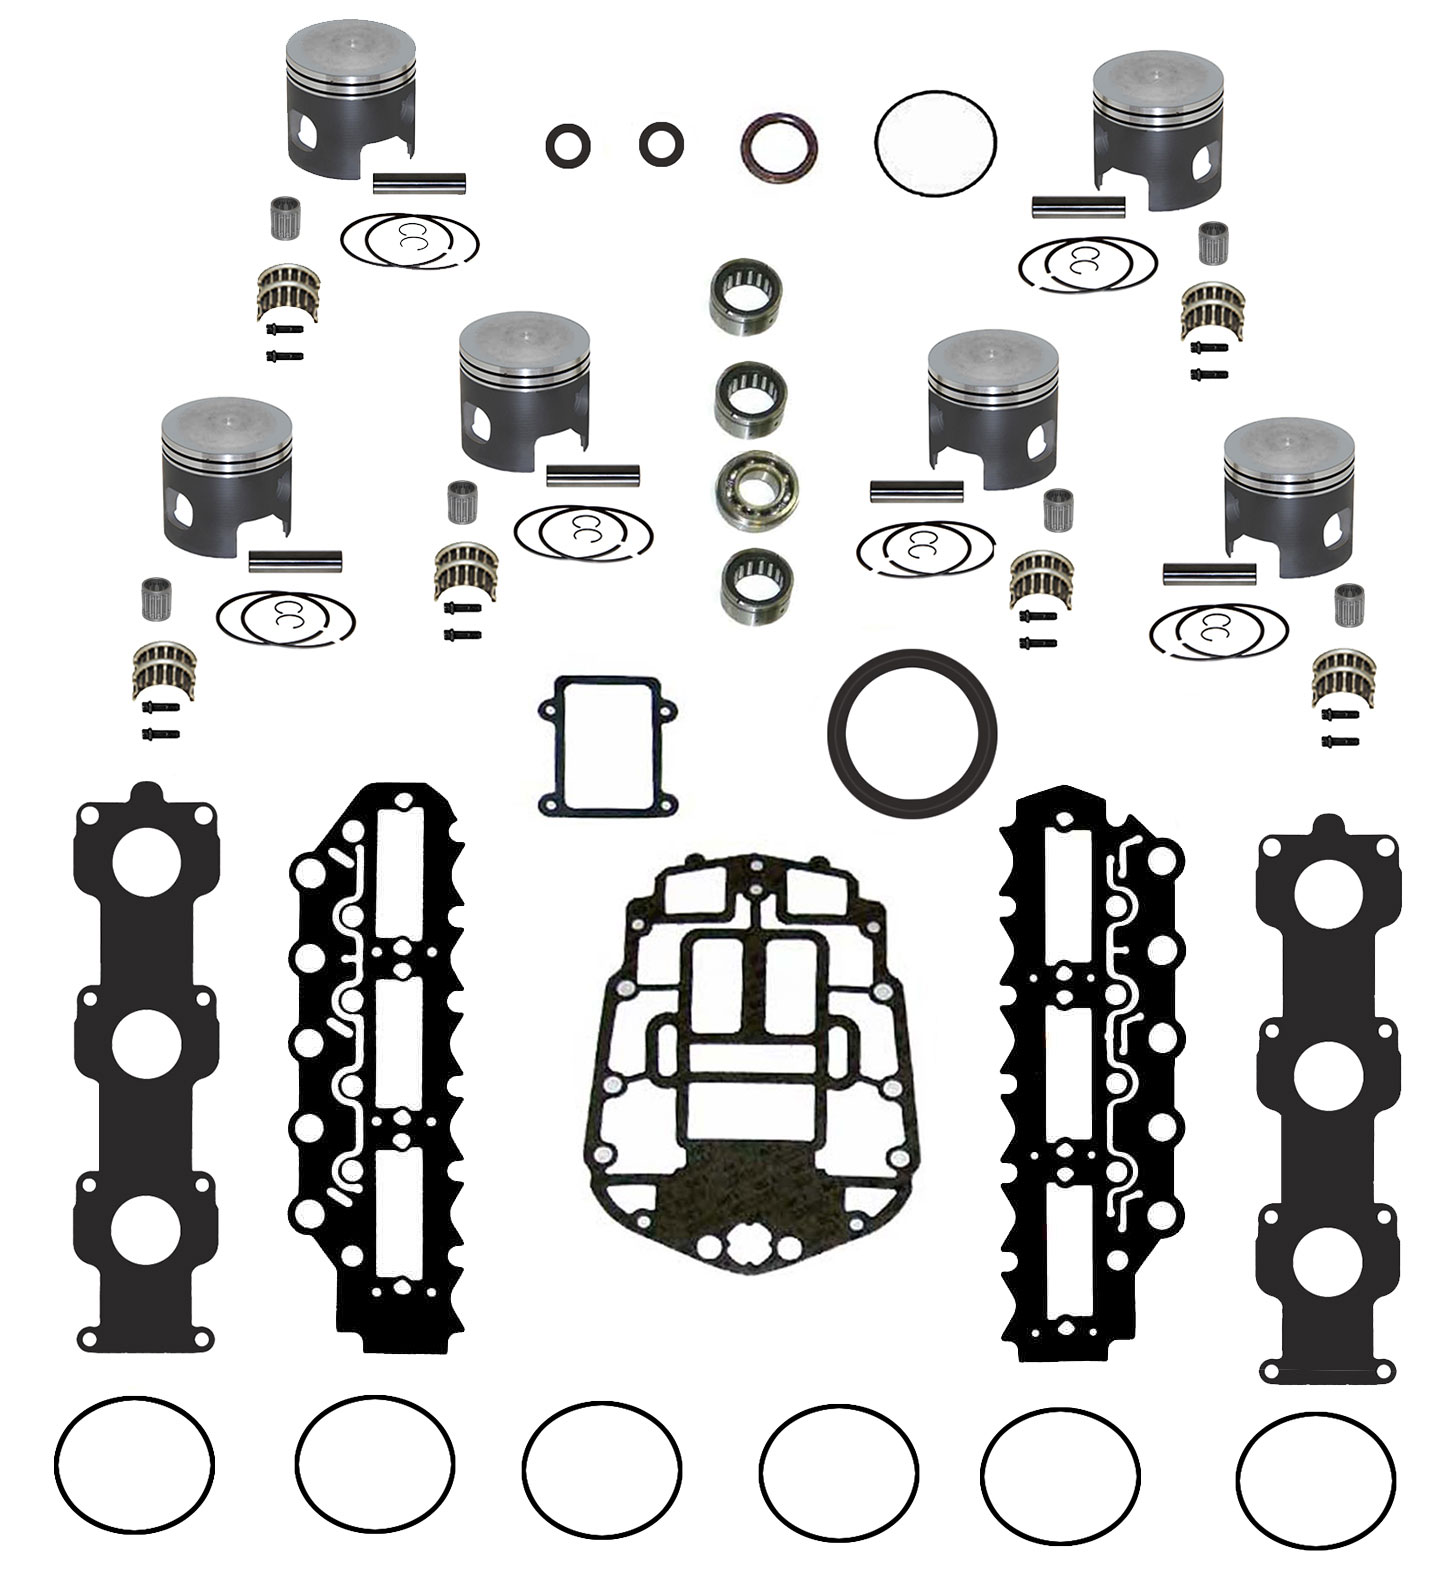 hight resolution of johnson evinrude v6 150 175 ficht rebuild kit